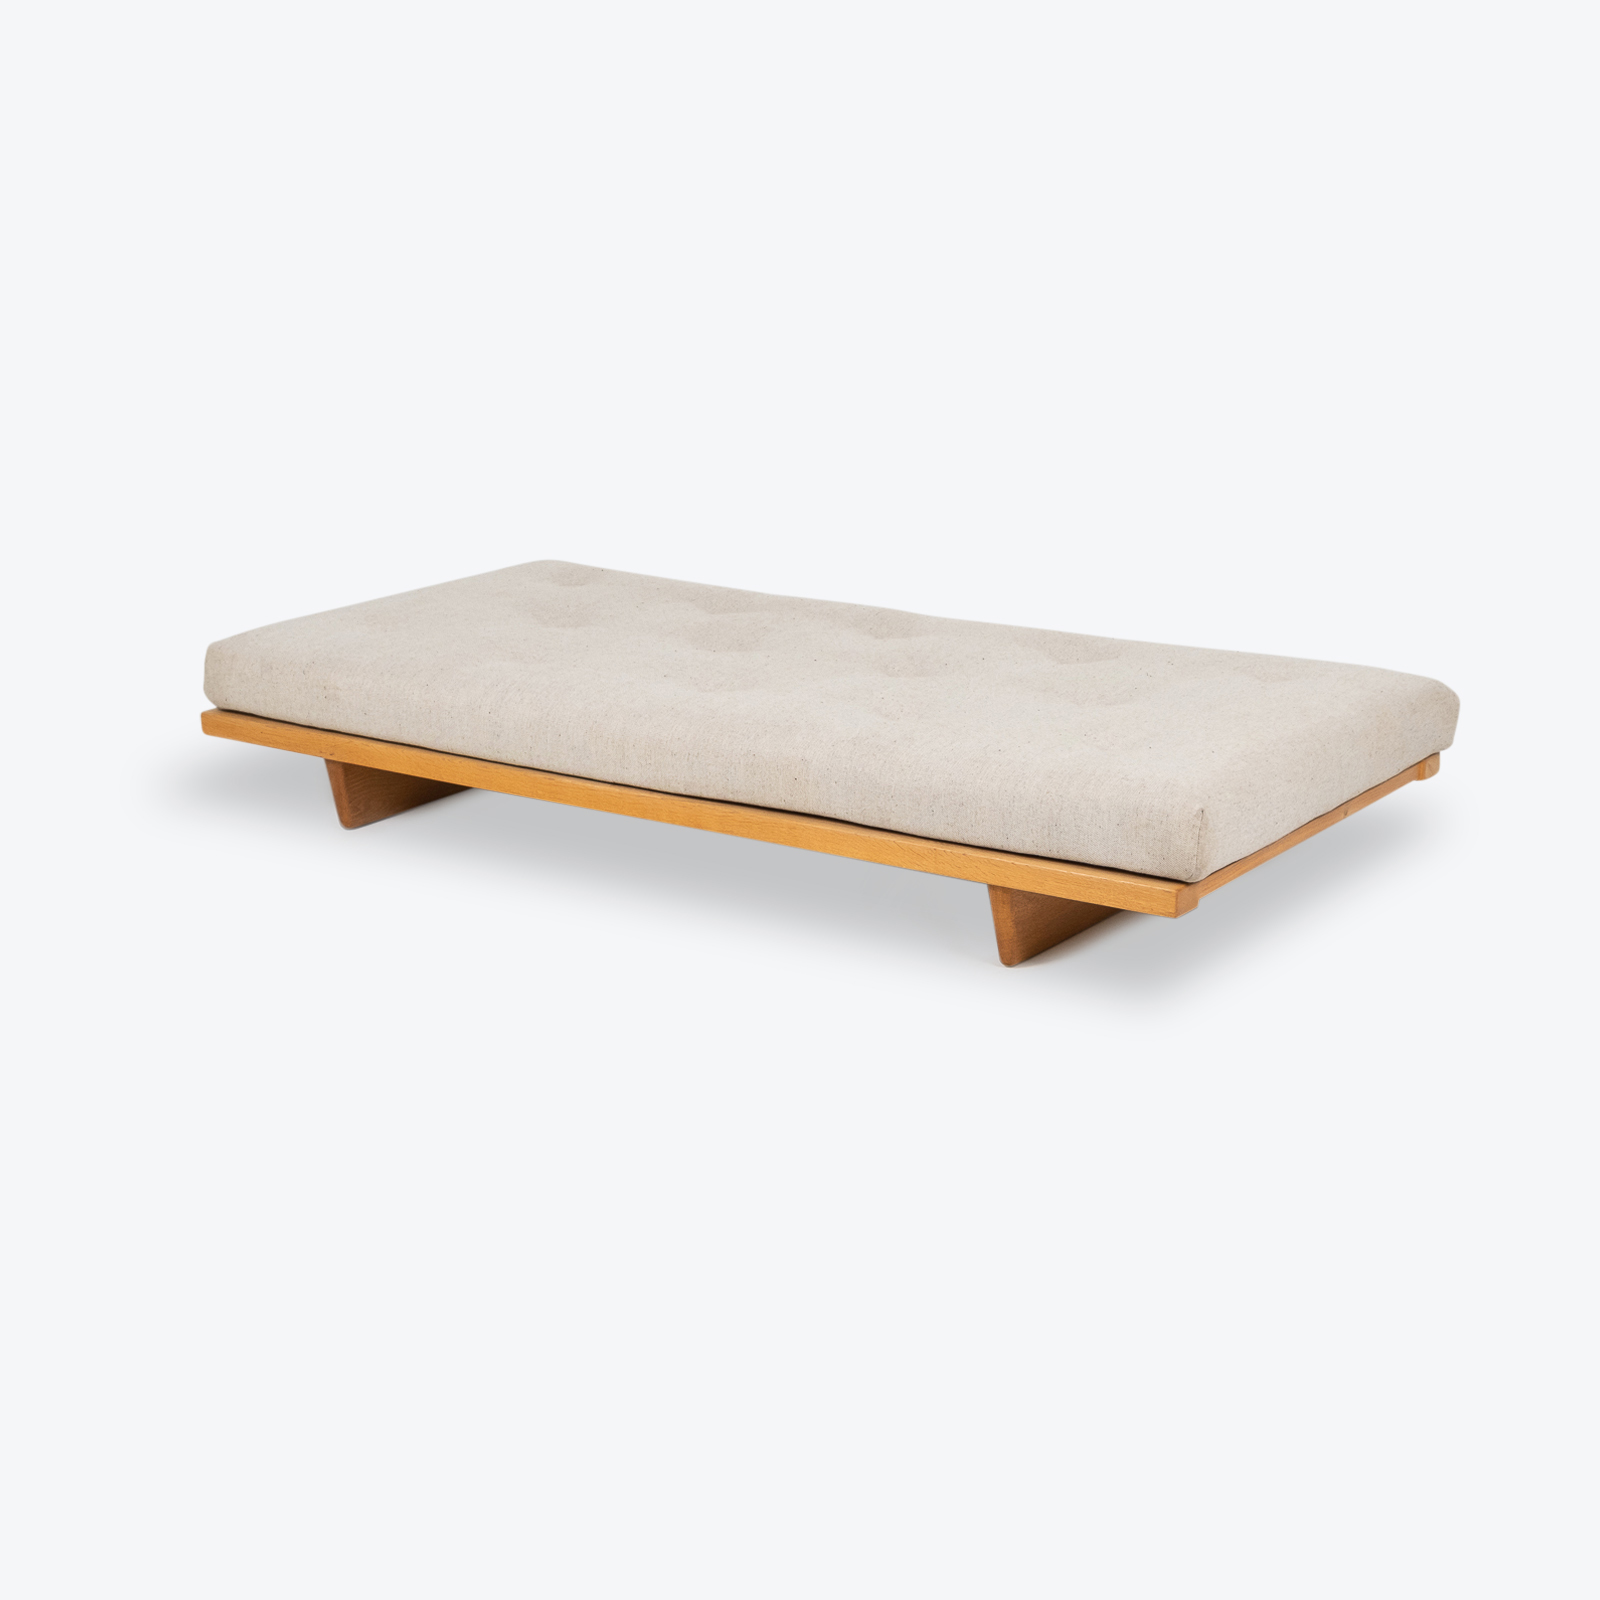 Model 192 Daybed By Borge Mogensen For Fredericia Stolefabrik In Oak And Instyle Upholstery, 1958, Denmark Herov1